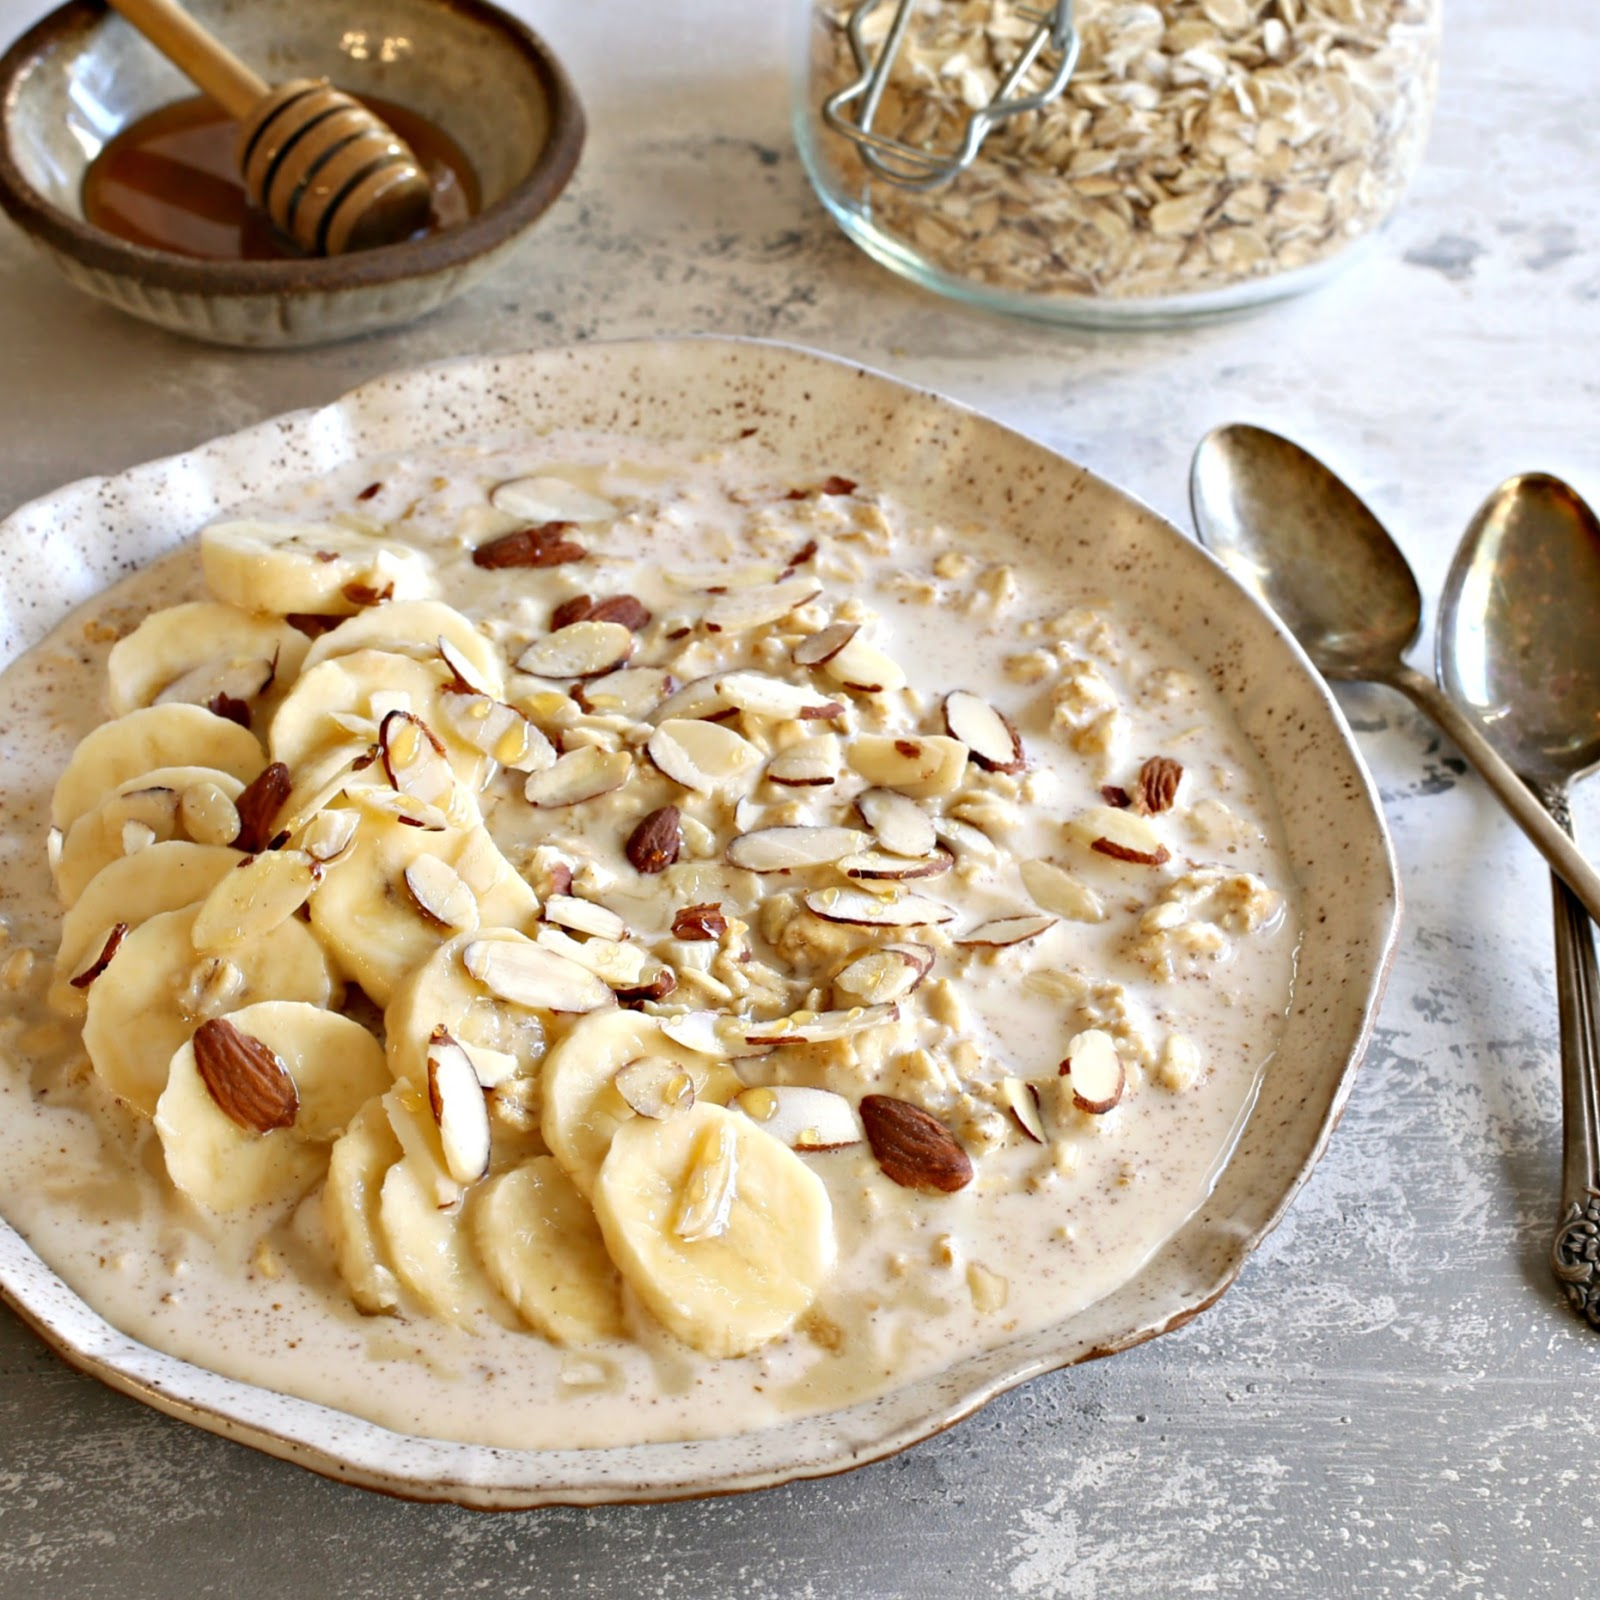 Overnight oats flavored with honey, tahini (sesame paste), banana and almonds.